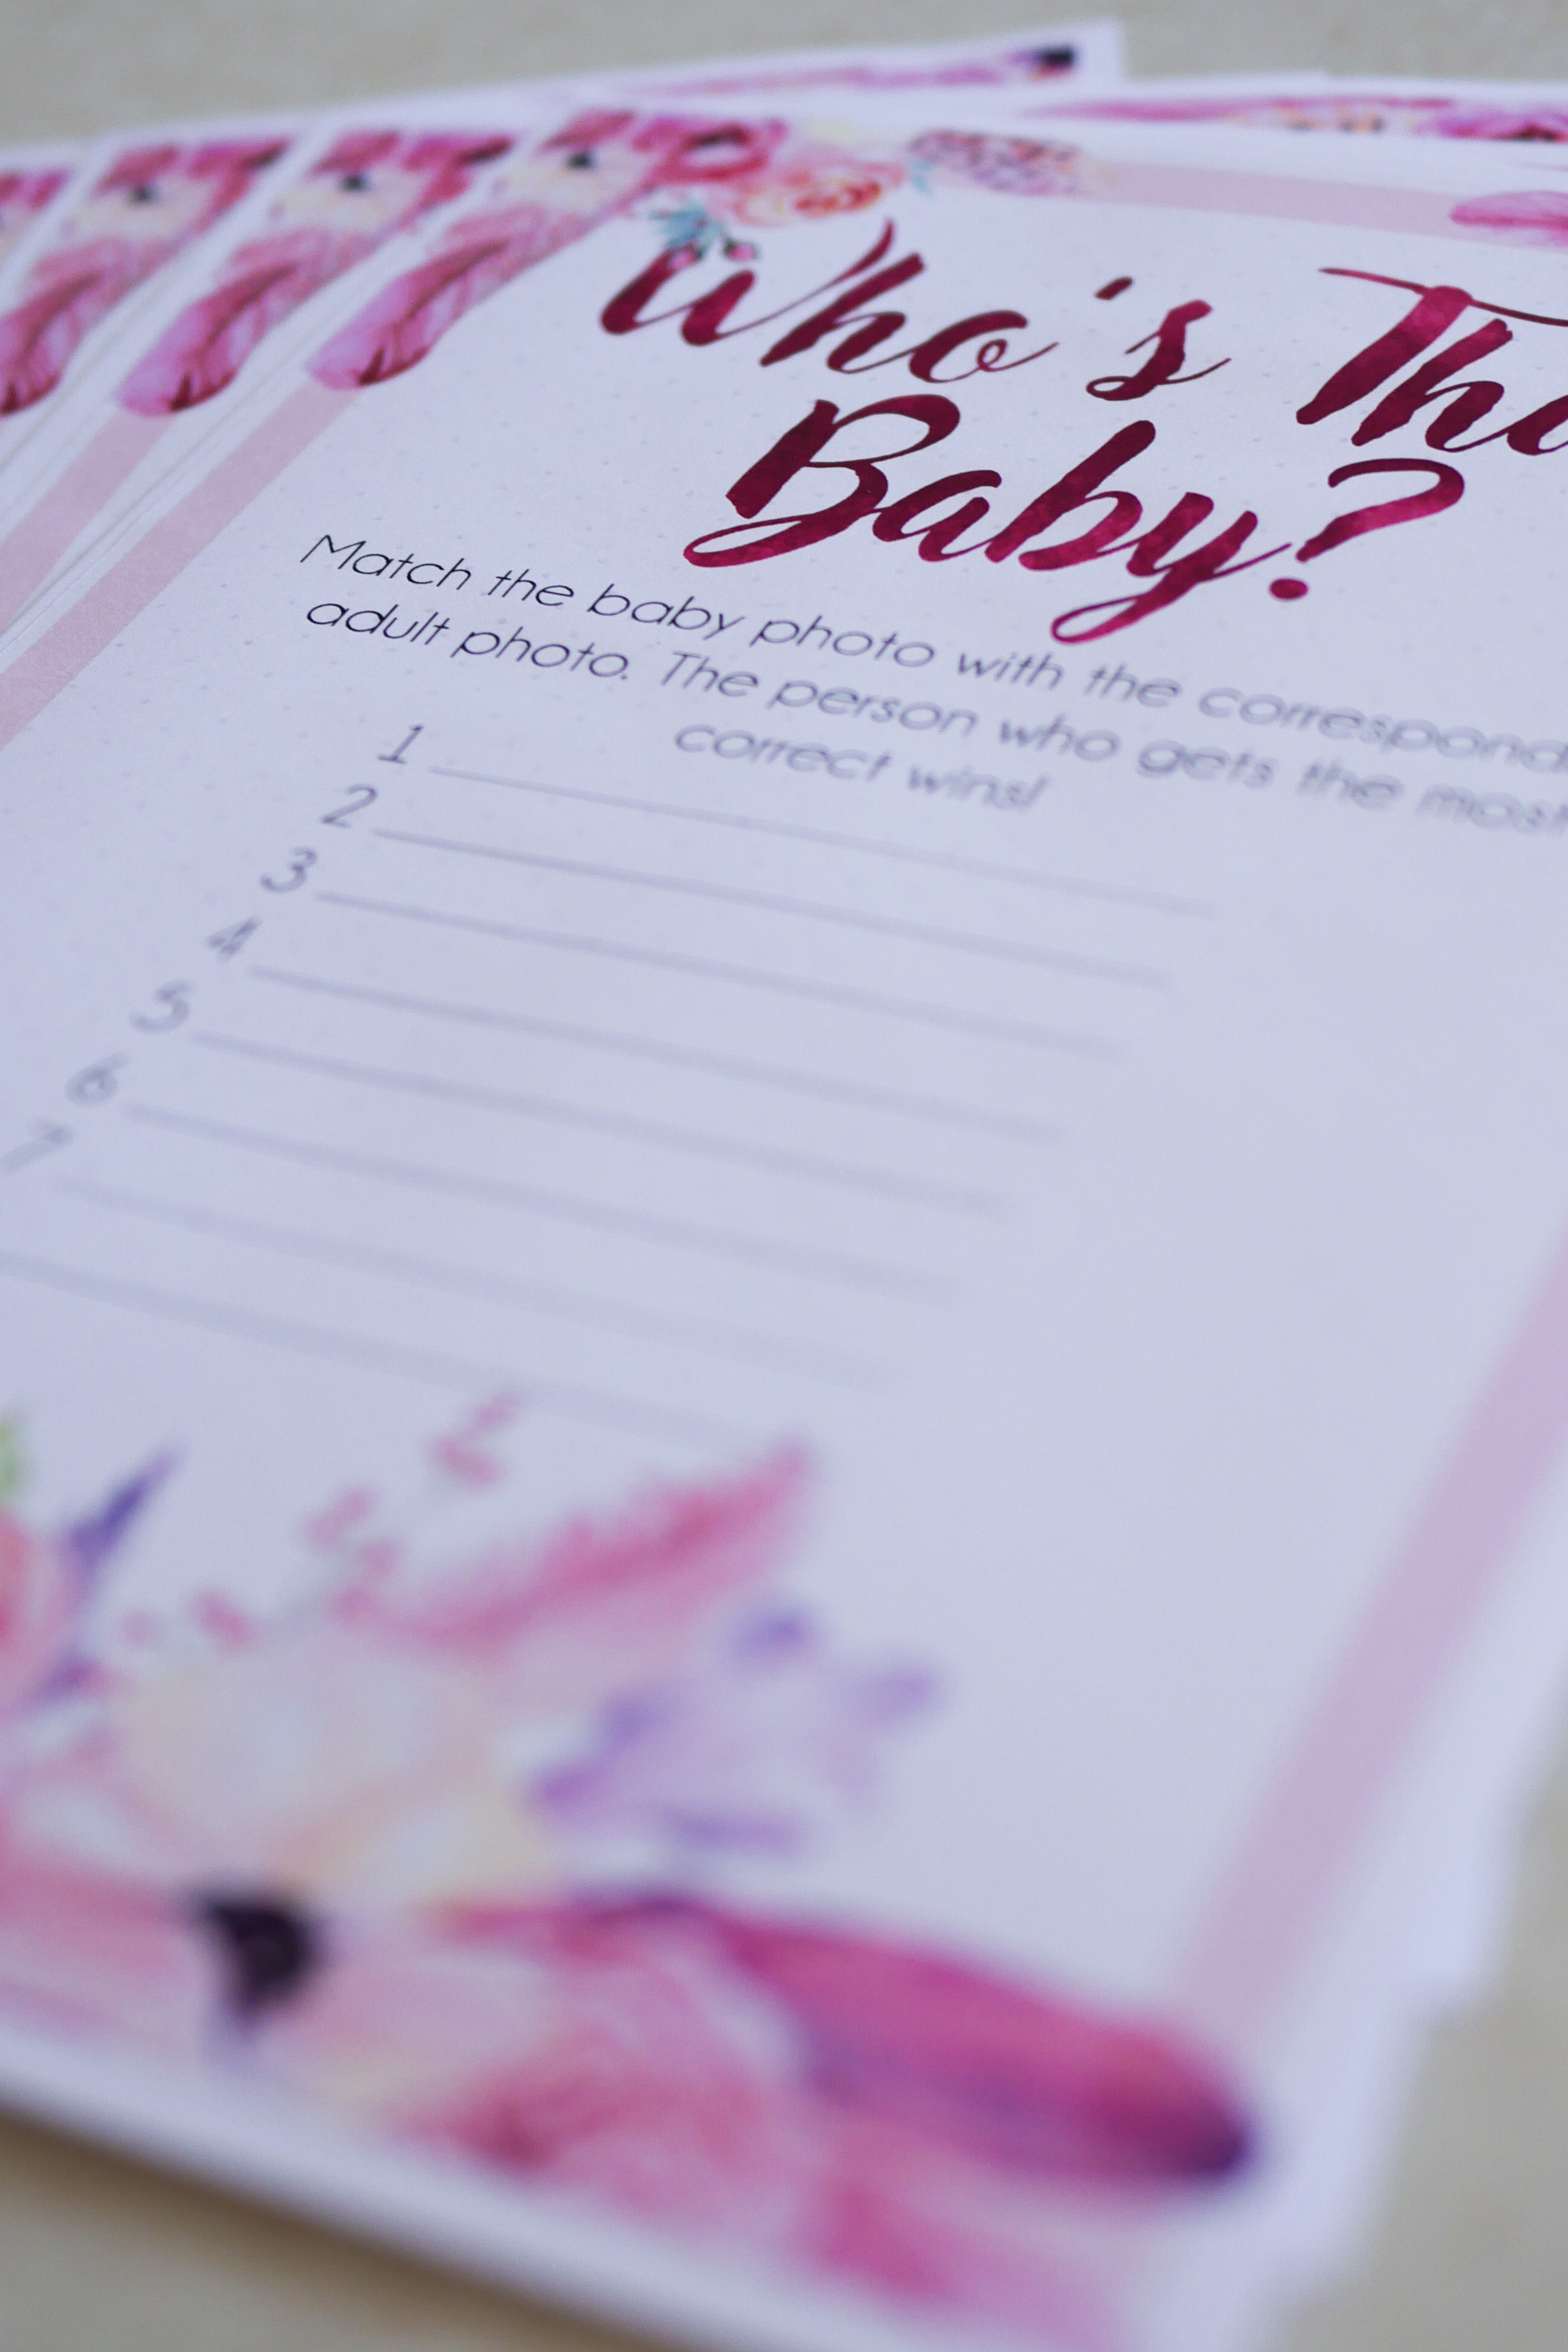 Who's That Baby Answer Sheet 1